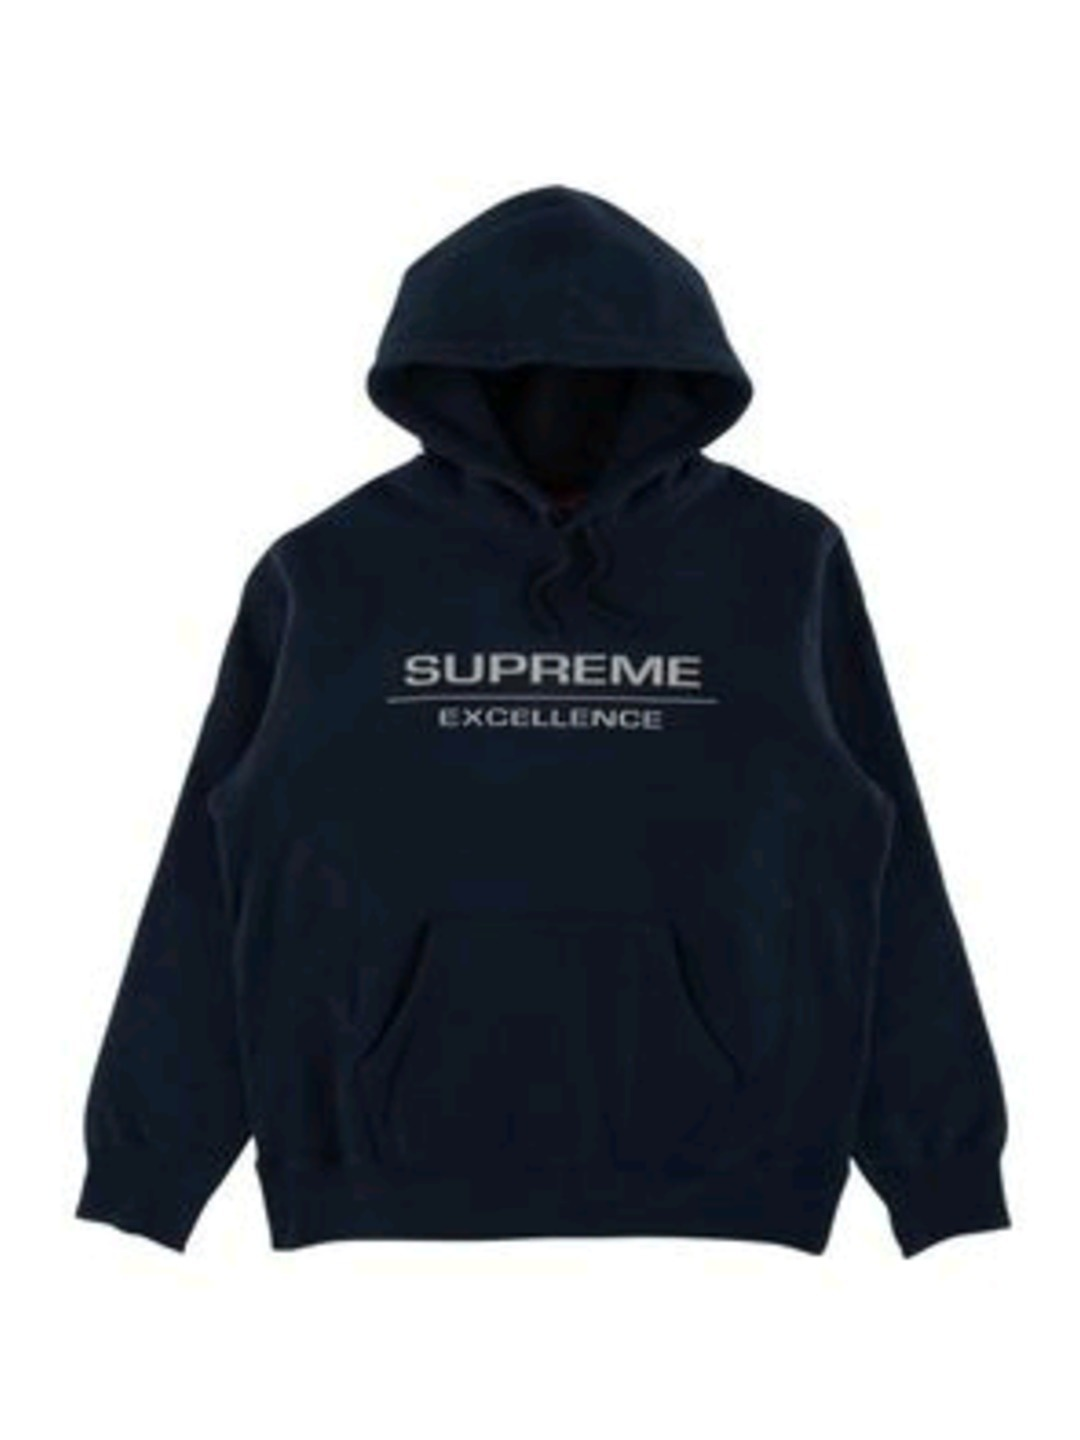 Damen kapuzenpullover & sweatshirts - SUPREME photo 1